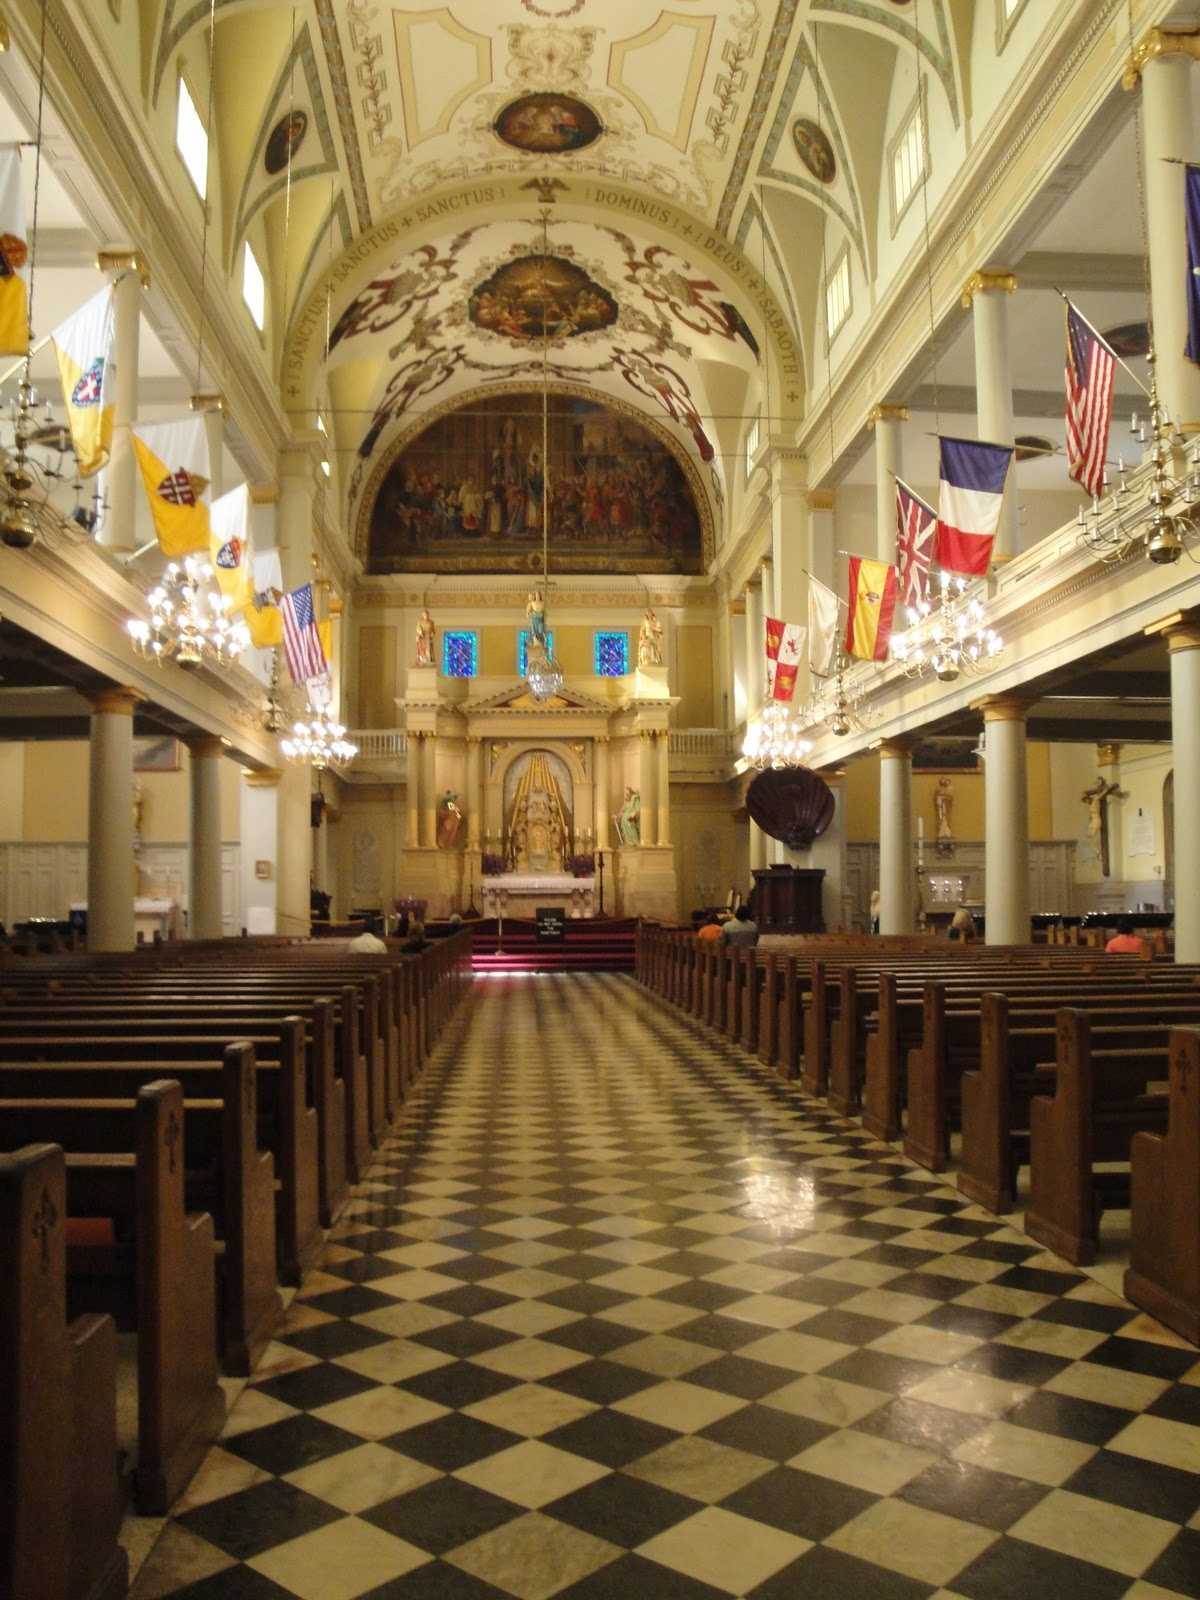 Interior of St. Louis Cathedral